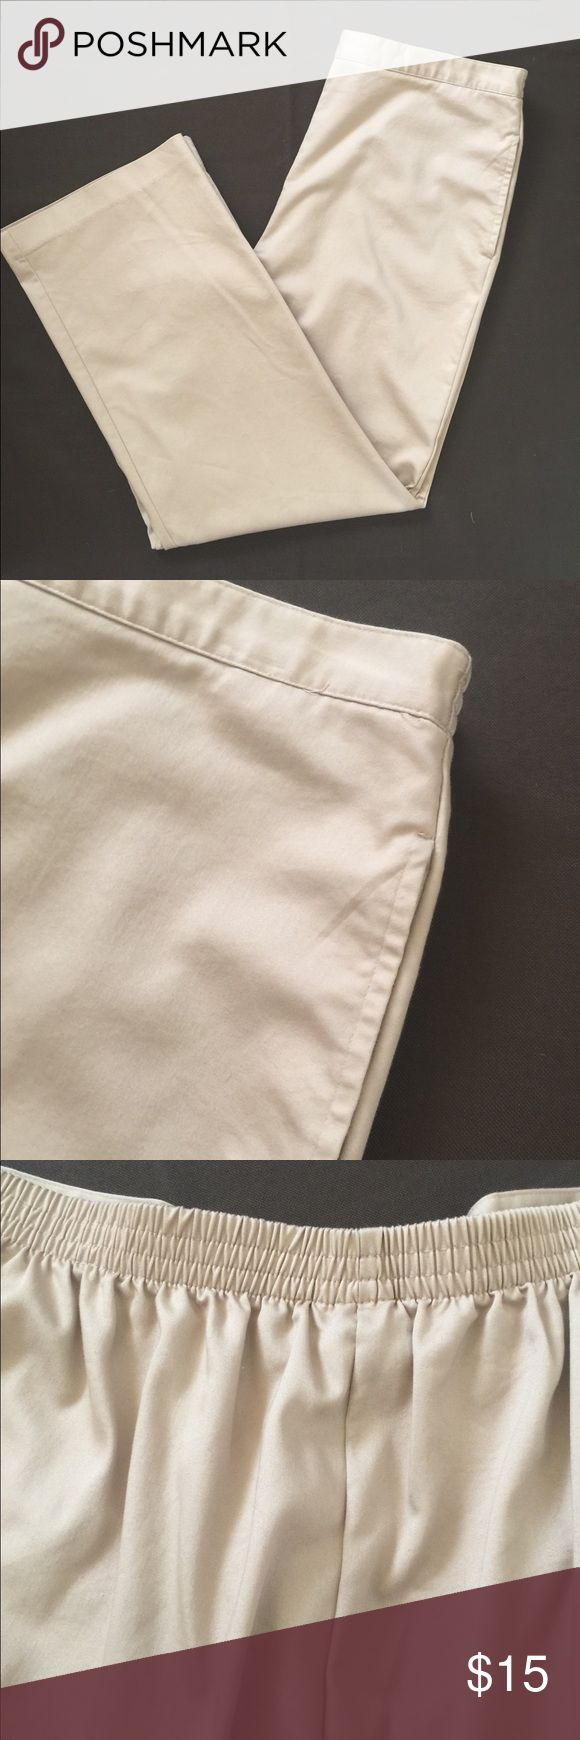 "Smooth tan pants Smooth cotton. Smooth waist band in front with elastic in back. Side pockets. Very sharp looking.  Only wore once to a meeting. Inseam 29"" Alfred Dunner Pants Trousers"